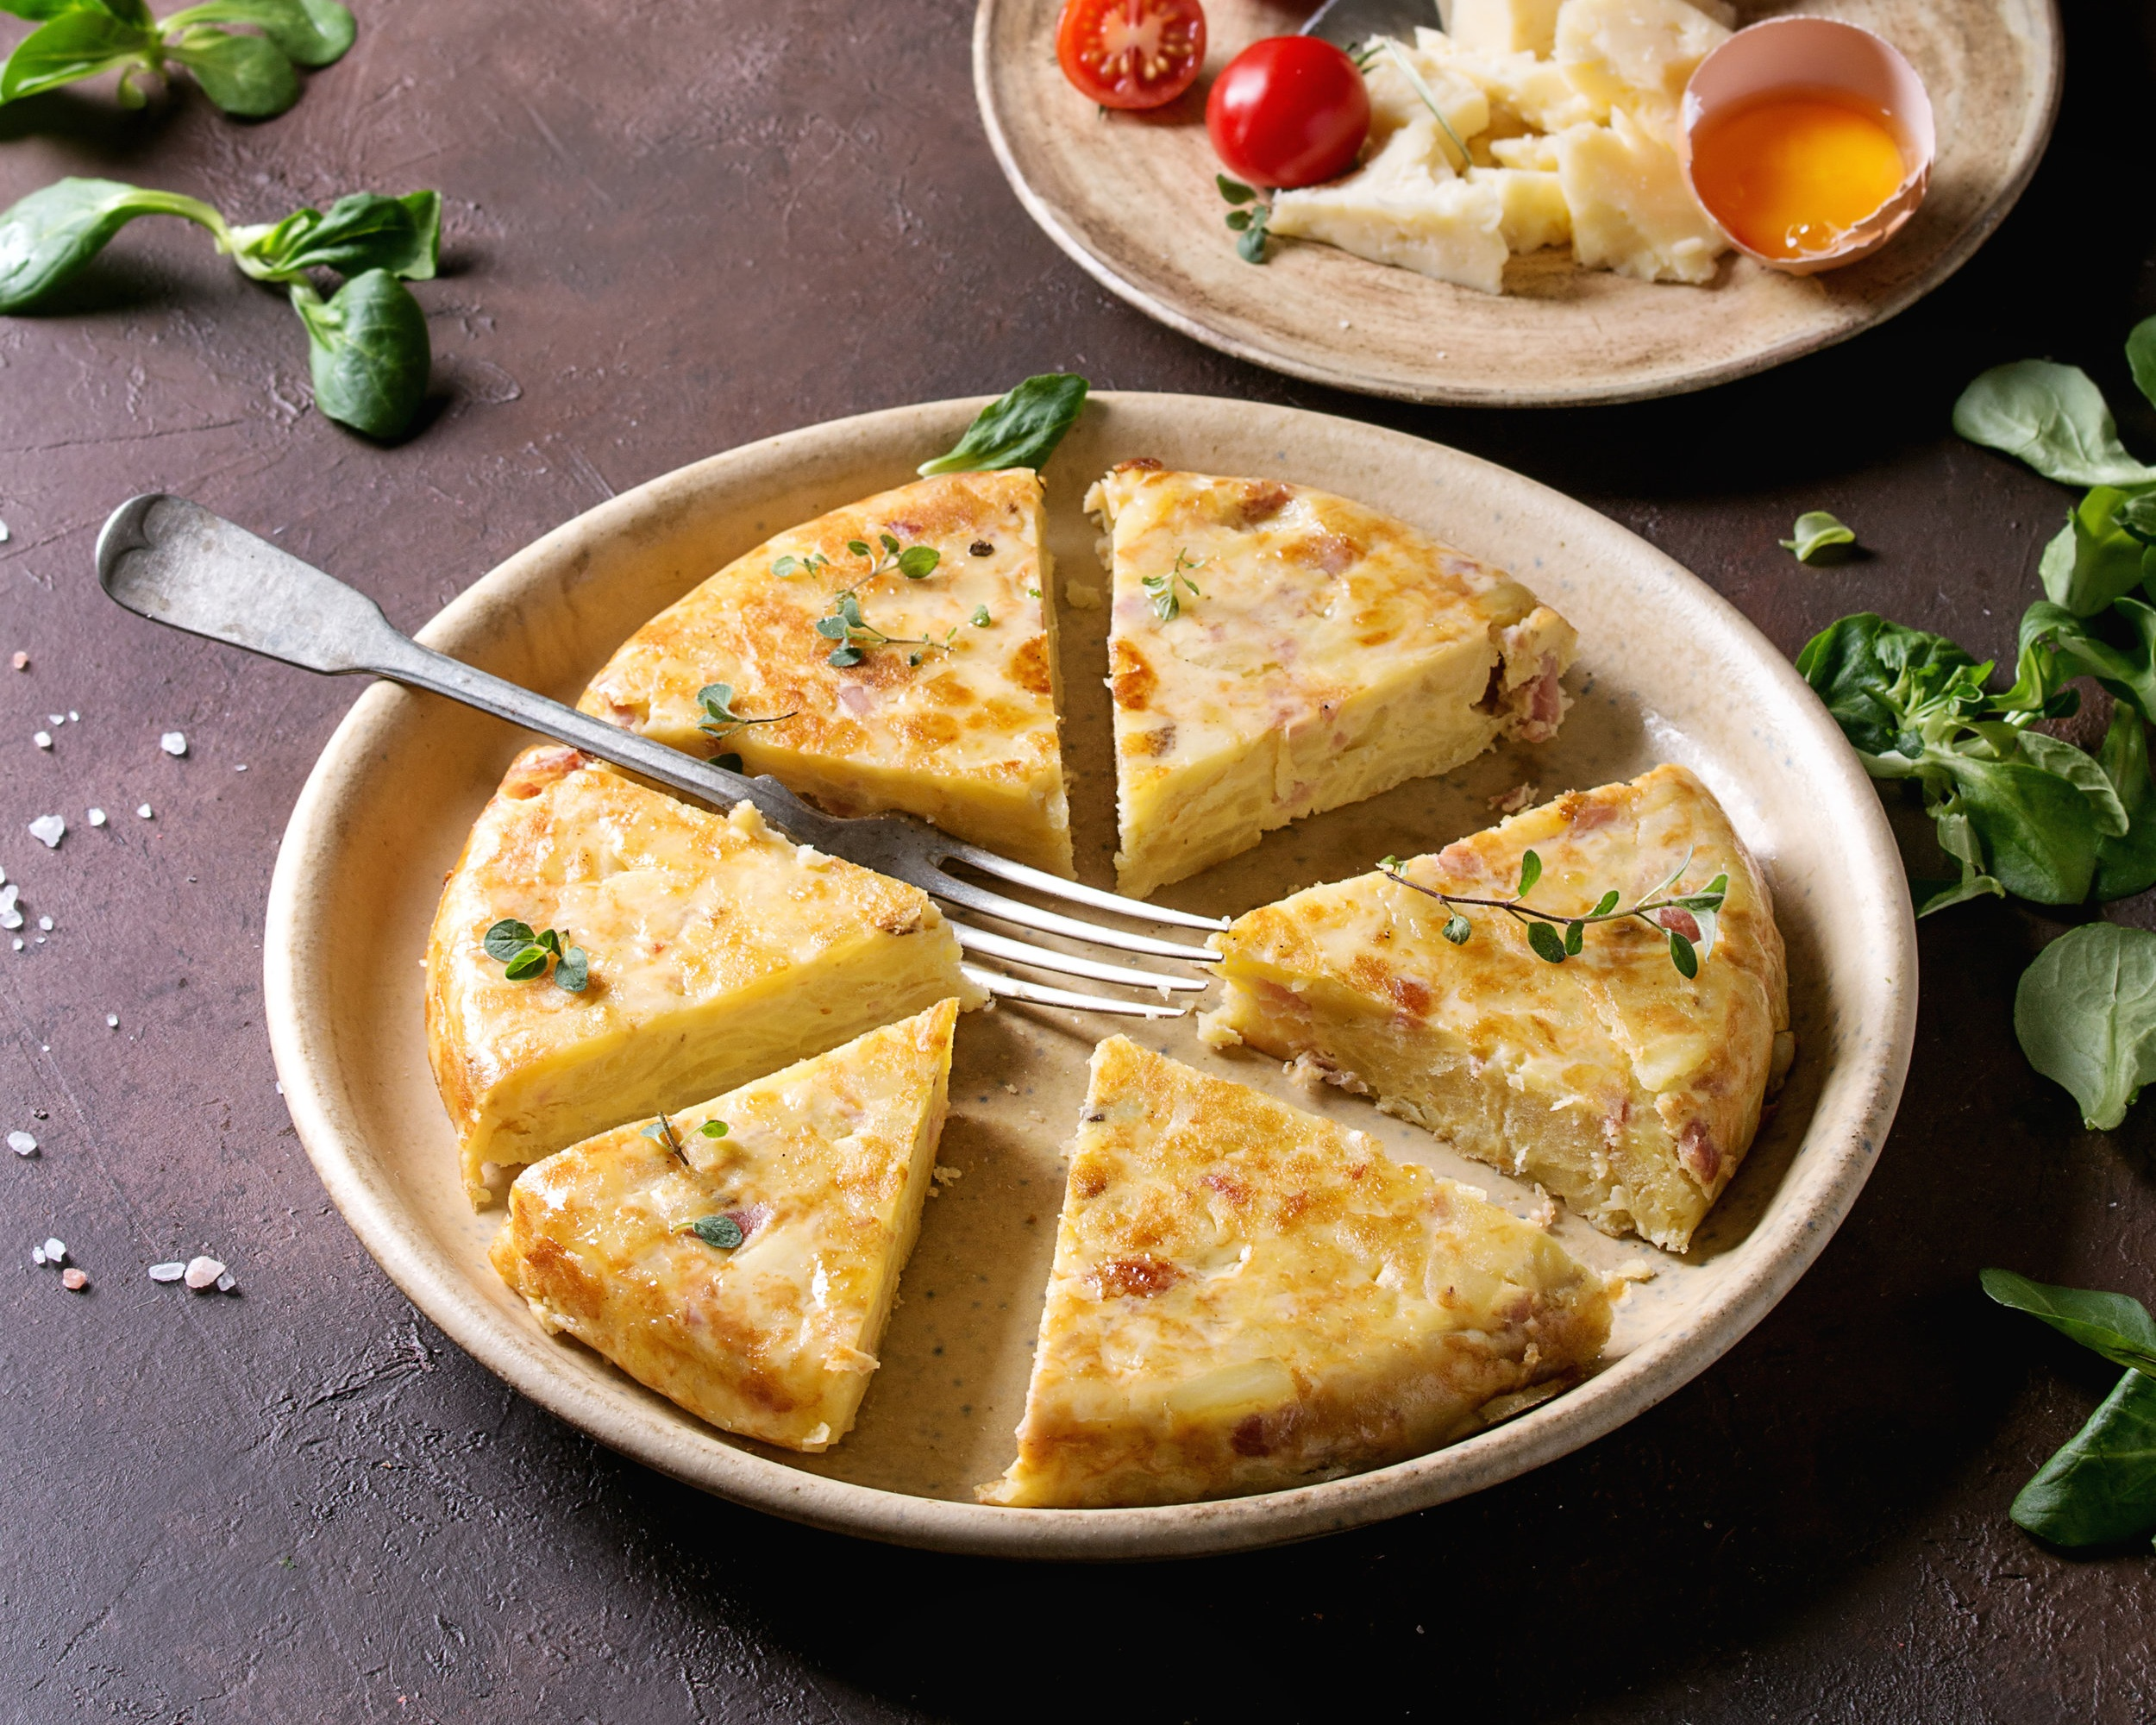 Tortilla Española - Just like an omelette, a simple Spanish tortilla typically has beaten eggs, oil, potatoes and onions.